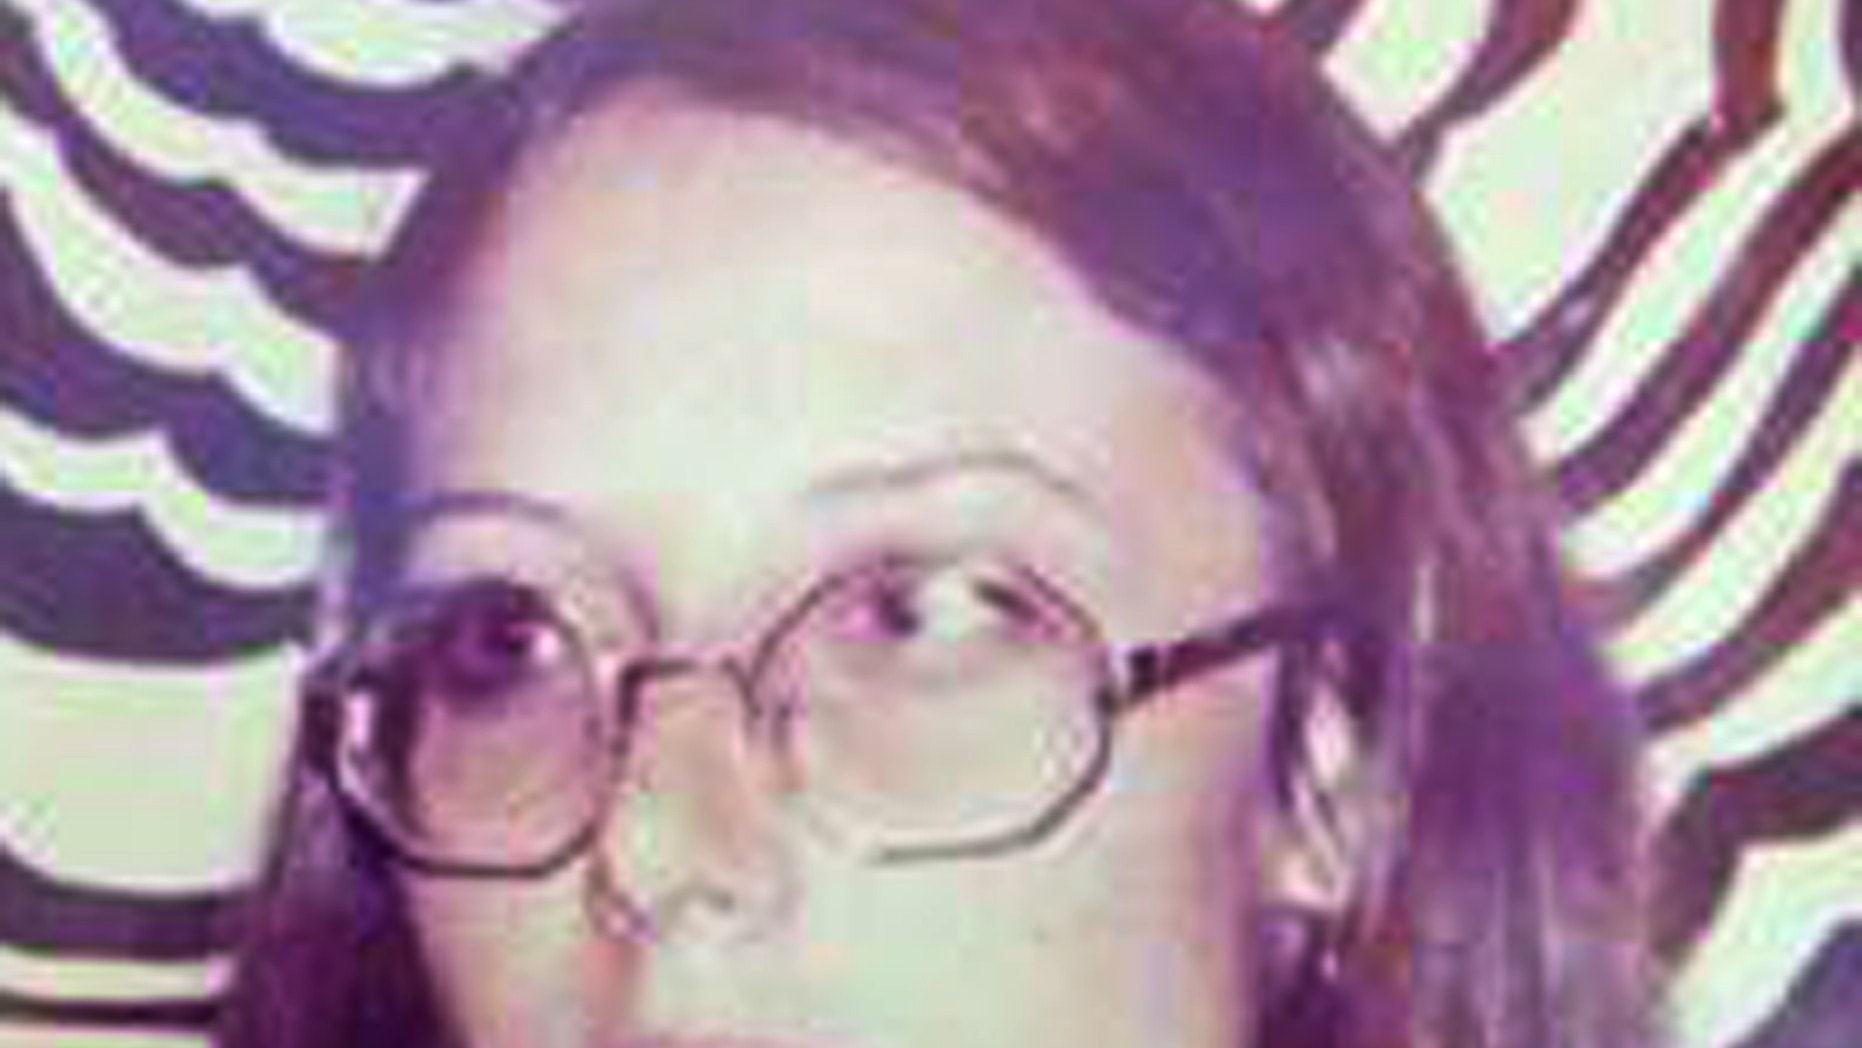 """FILE - In this 1973 photo provided by Judith Cabanillas is her sister, Mary Jayne Jones, a year before the 17-year-old girl was found dead in an Iowa farmhouse. A judge declared a mistrial Friday, Jan. 30, 2014 after jurors couldn't reach a verdict in the case against Robert """"Gene"""" Pilcher who was charged with first-degree murder in the April 9, 1974 slaying of 17-year-old Jones. (AP Photo/Courtesy Judith Cabanillas, File)"""